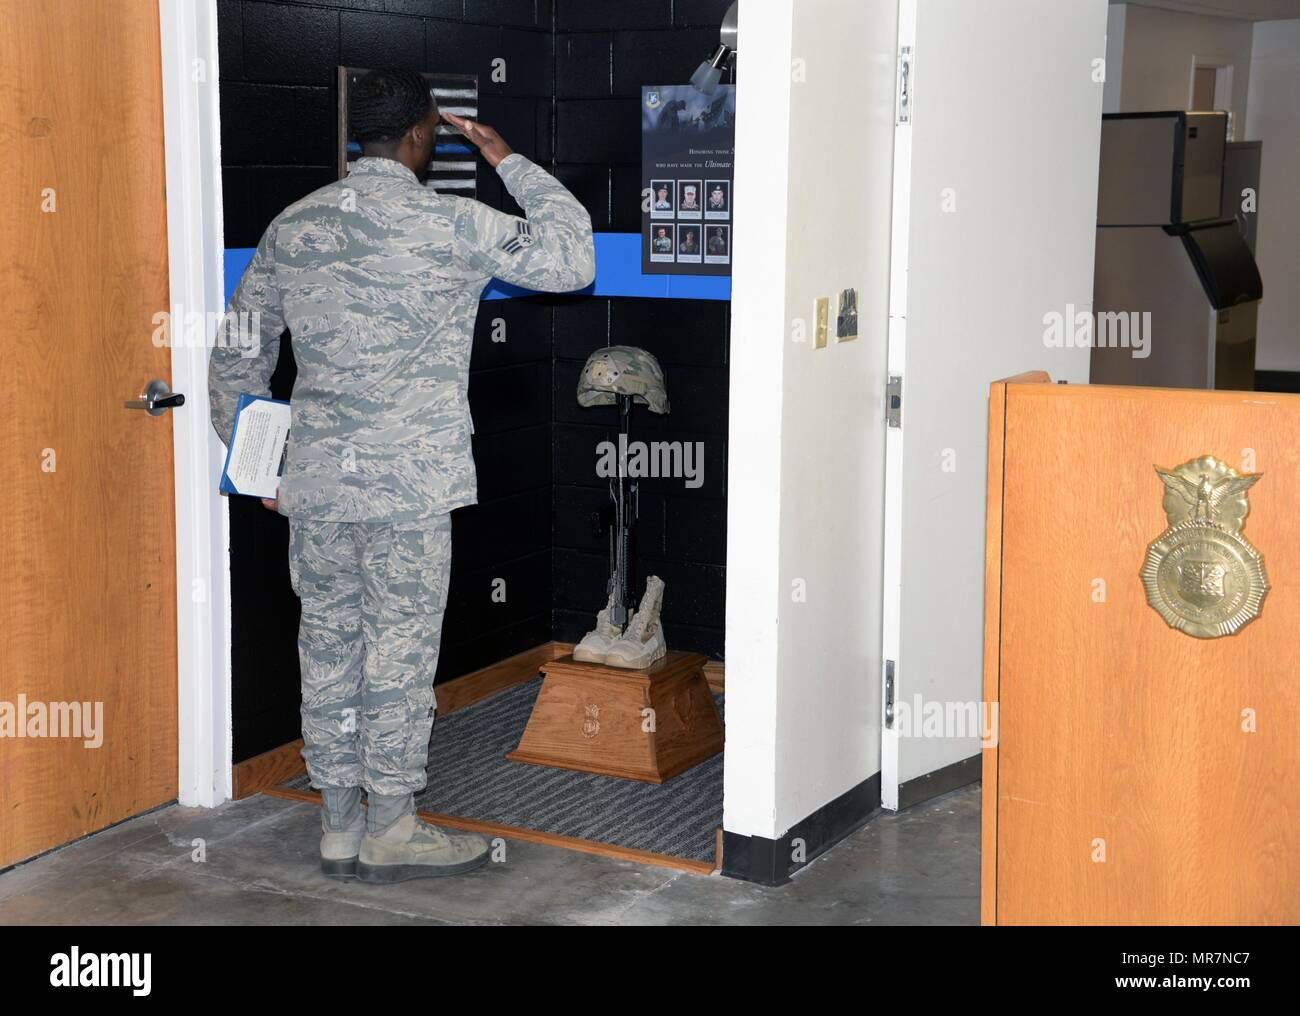 The 82nd Security Forces Squadron held a ceremony at Sheppard Air Force Base, Texas, May 17, 2017, which honored defenders who have made the ultimate sacrifice serving their country. Senior Airman Earnest Jackson Jr., 82nd SFS combat arms instructor, salutes the battlefield cross, which holds the dog tags of fallen defenders. (U.S. Air Force photo by Senior Airman Robert L. McIlrath) - Stock Image